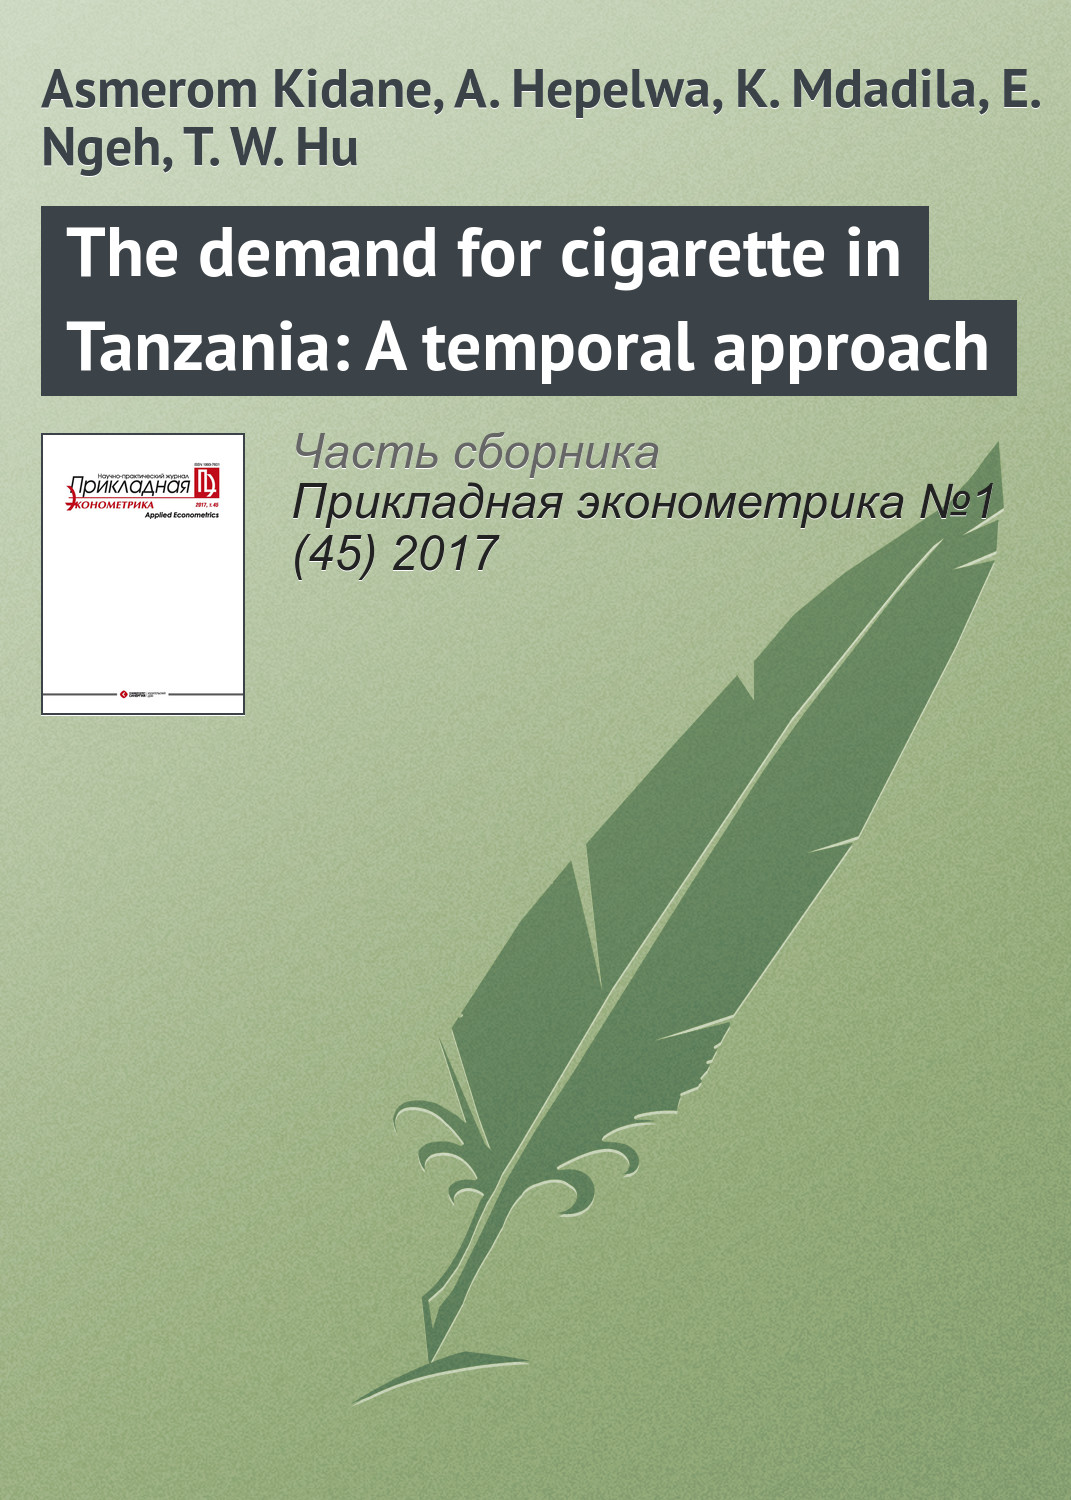 лучшая цена Asmerom Kidane The demand for cigarette in Tanzania: A temporal approach